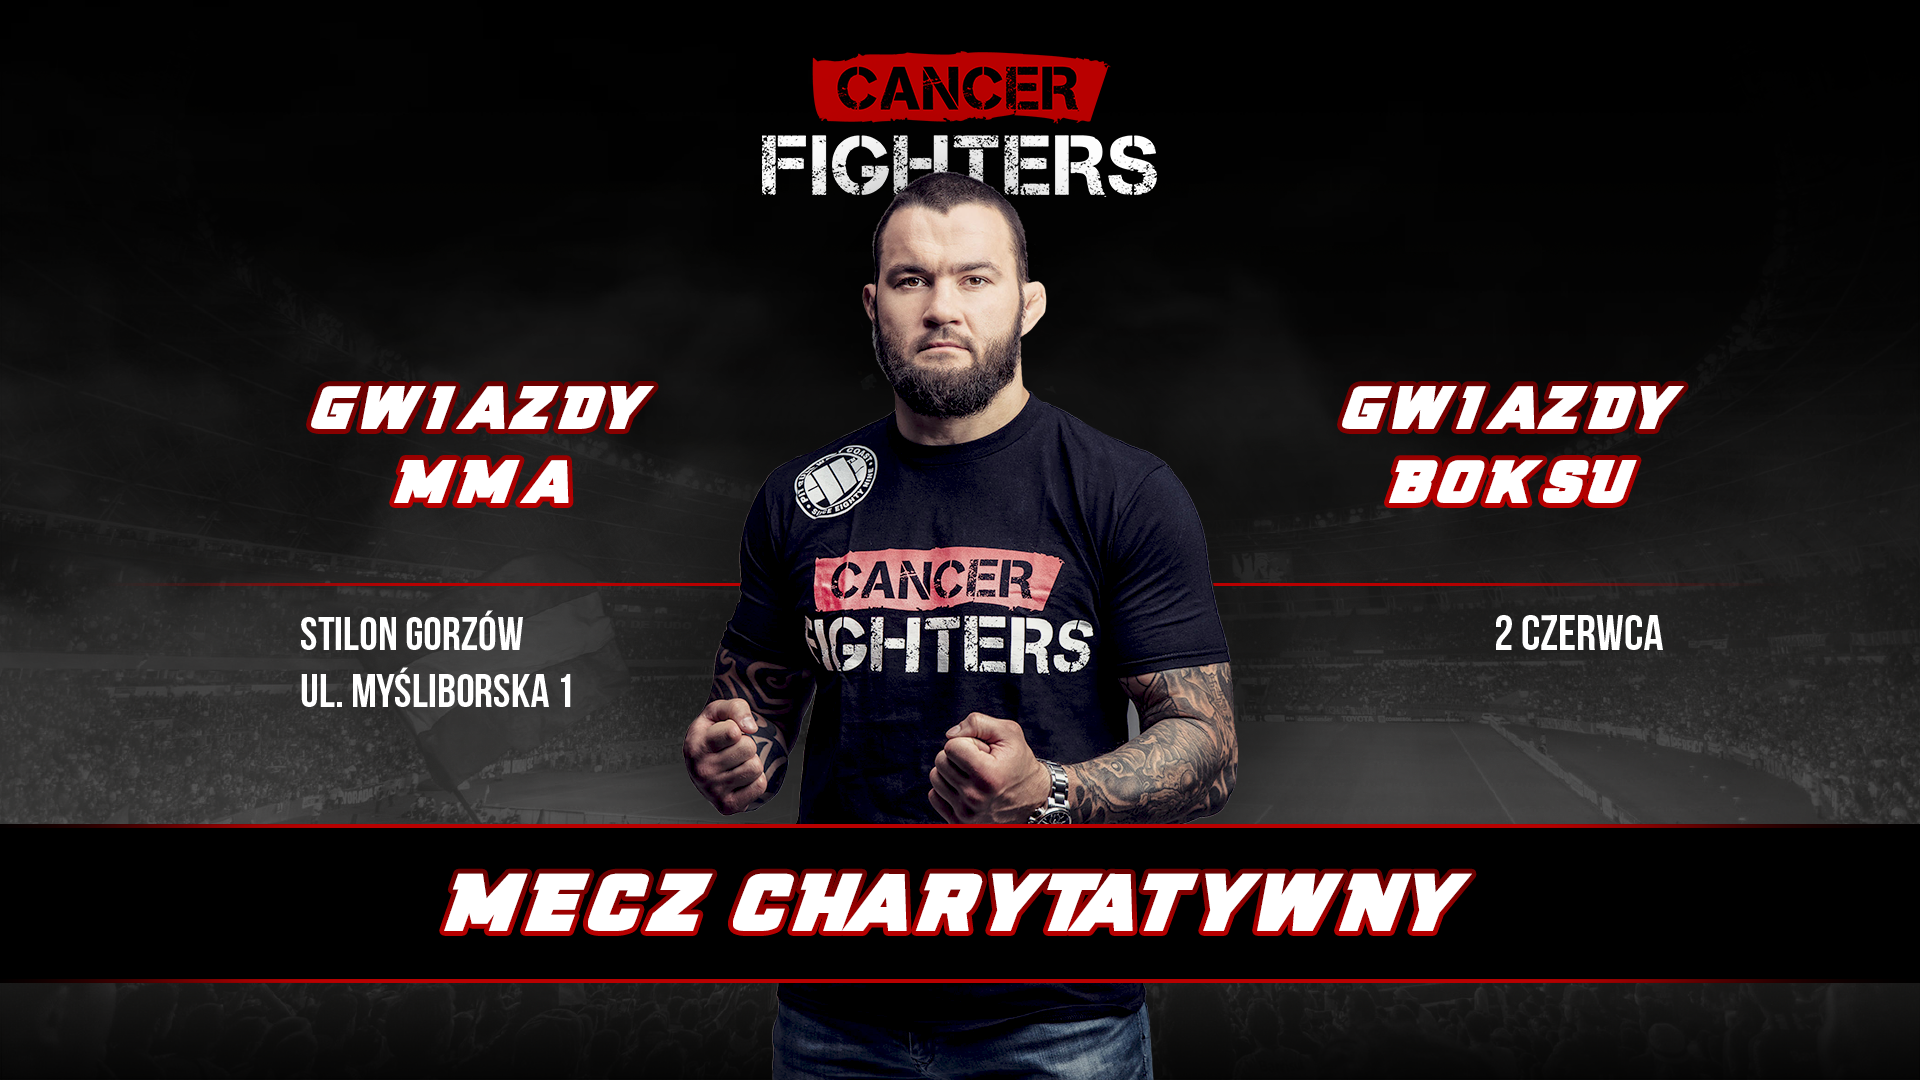 cancer_fighters_mecz_1920x1080